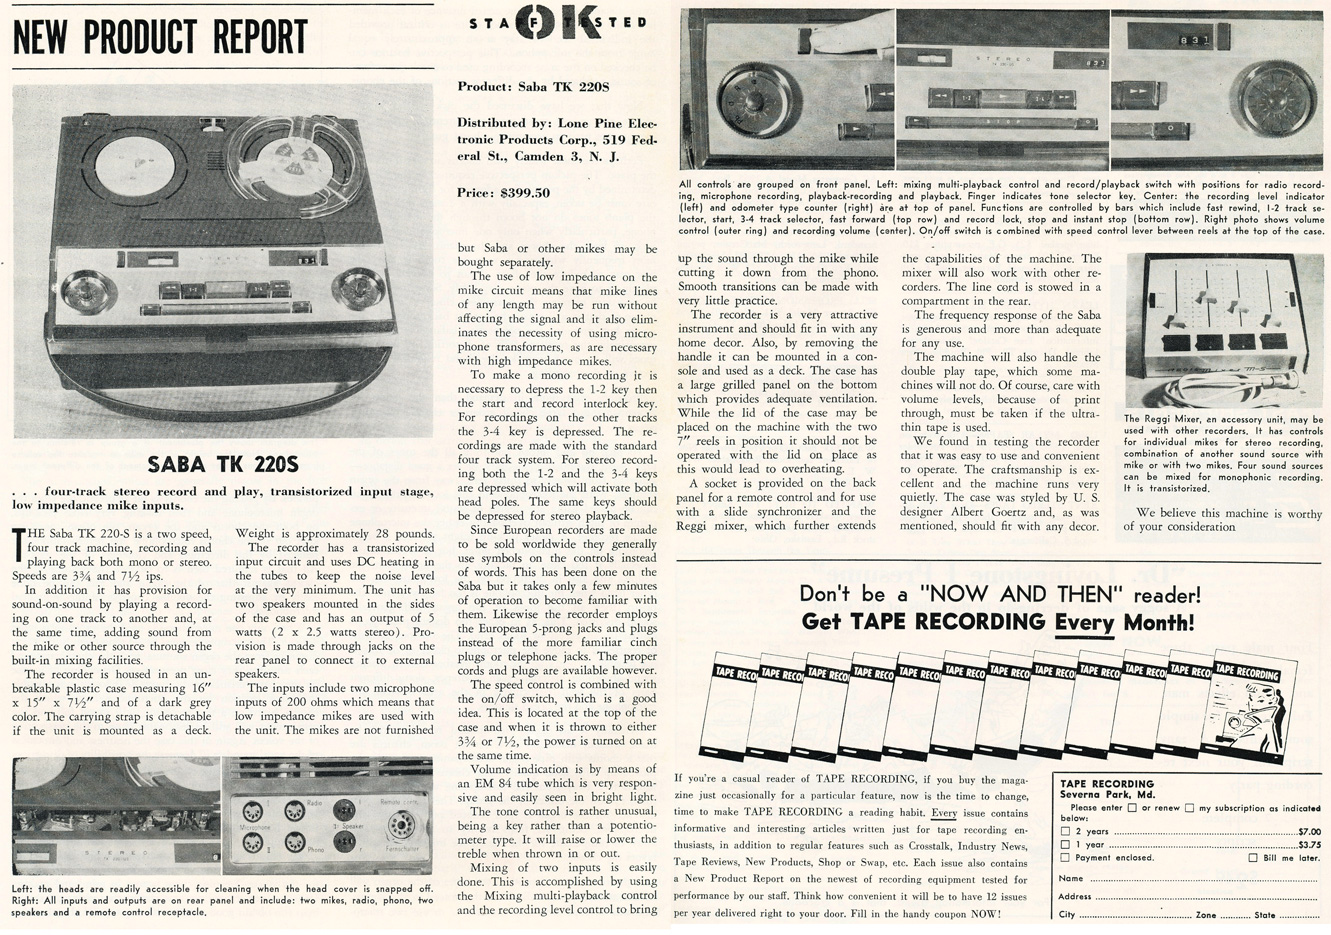 1963 review of the Sada TK 220S reel to reel tape recorder in Reel2ReelTexas.com's vintage recording collection